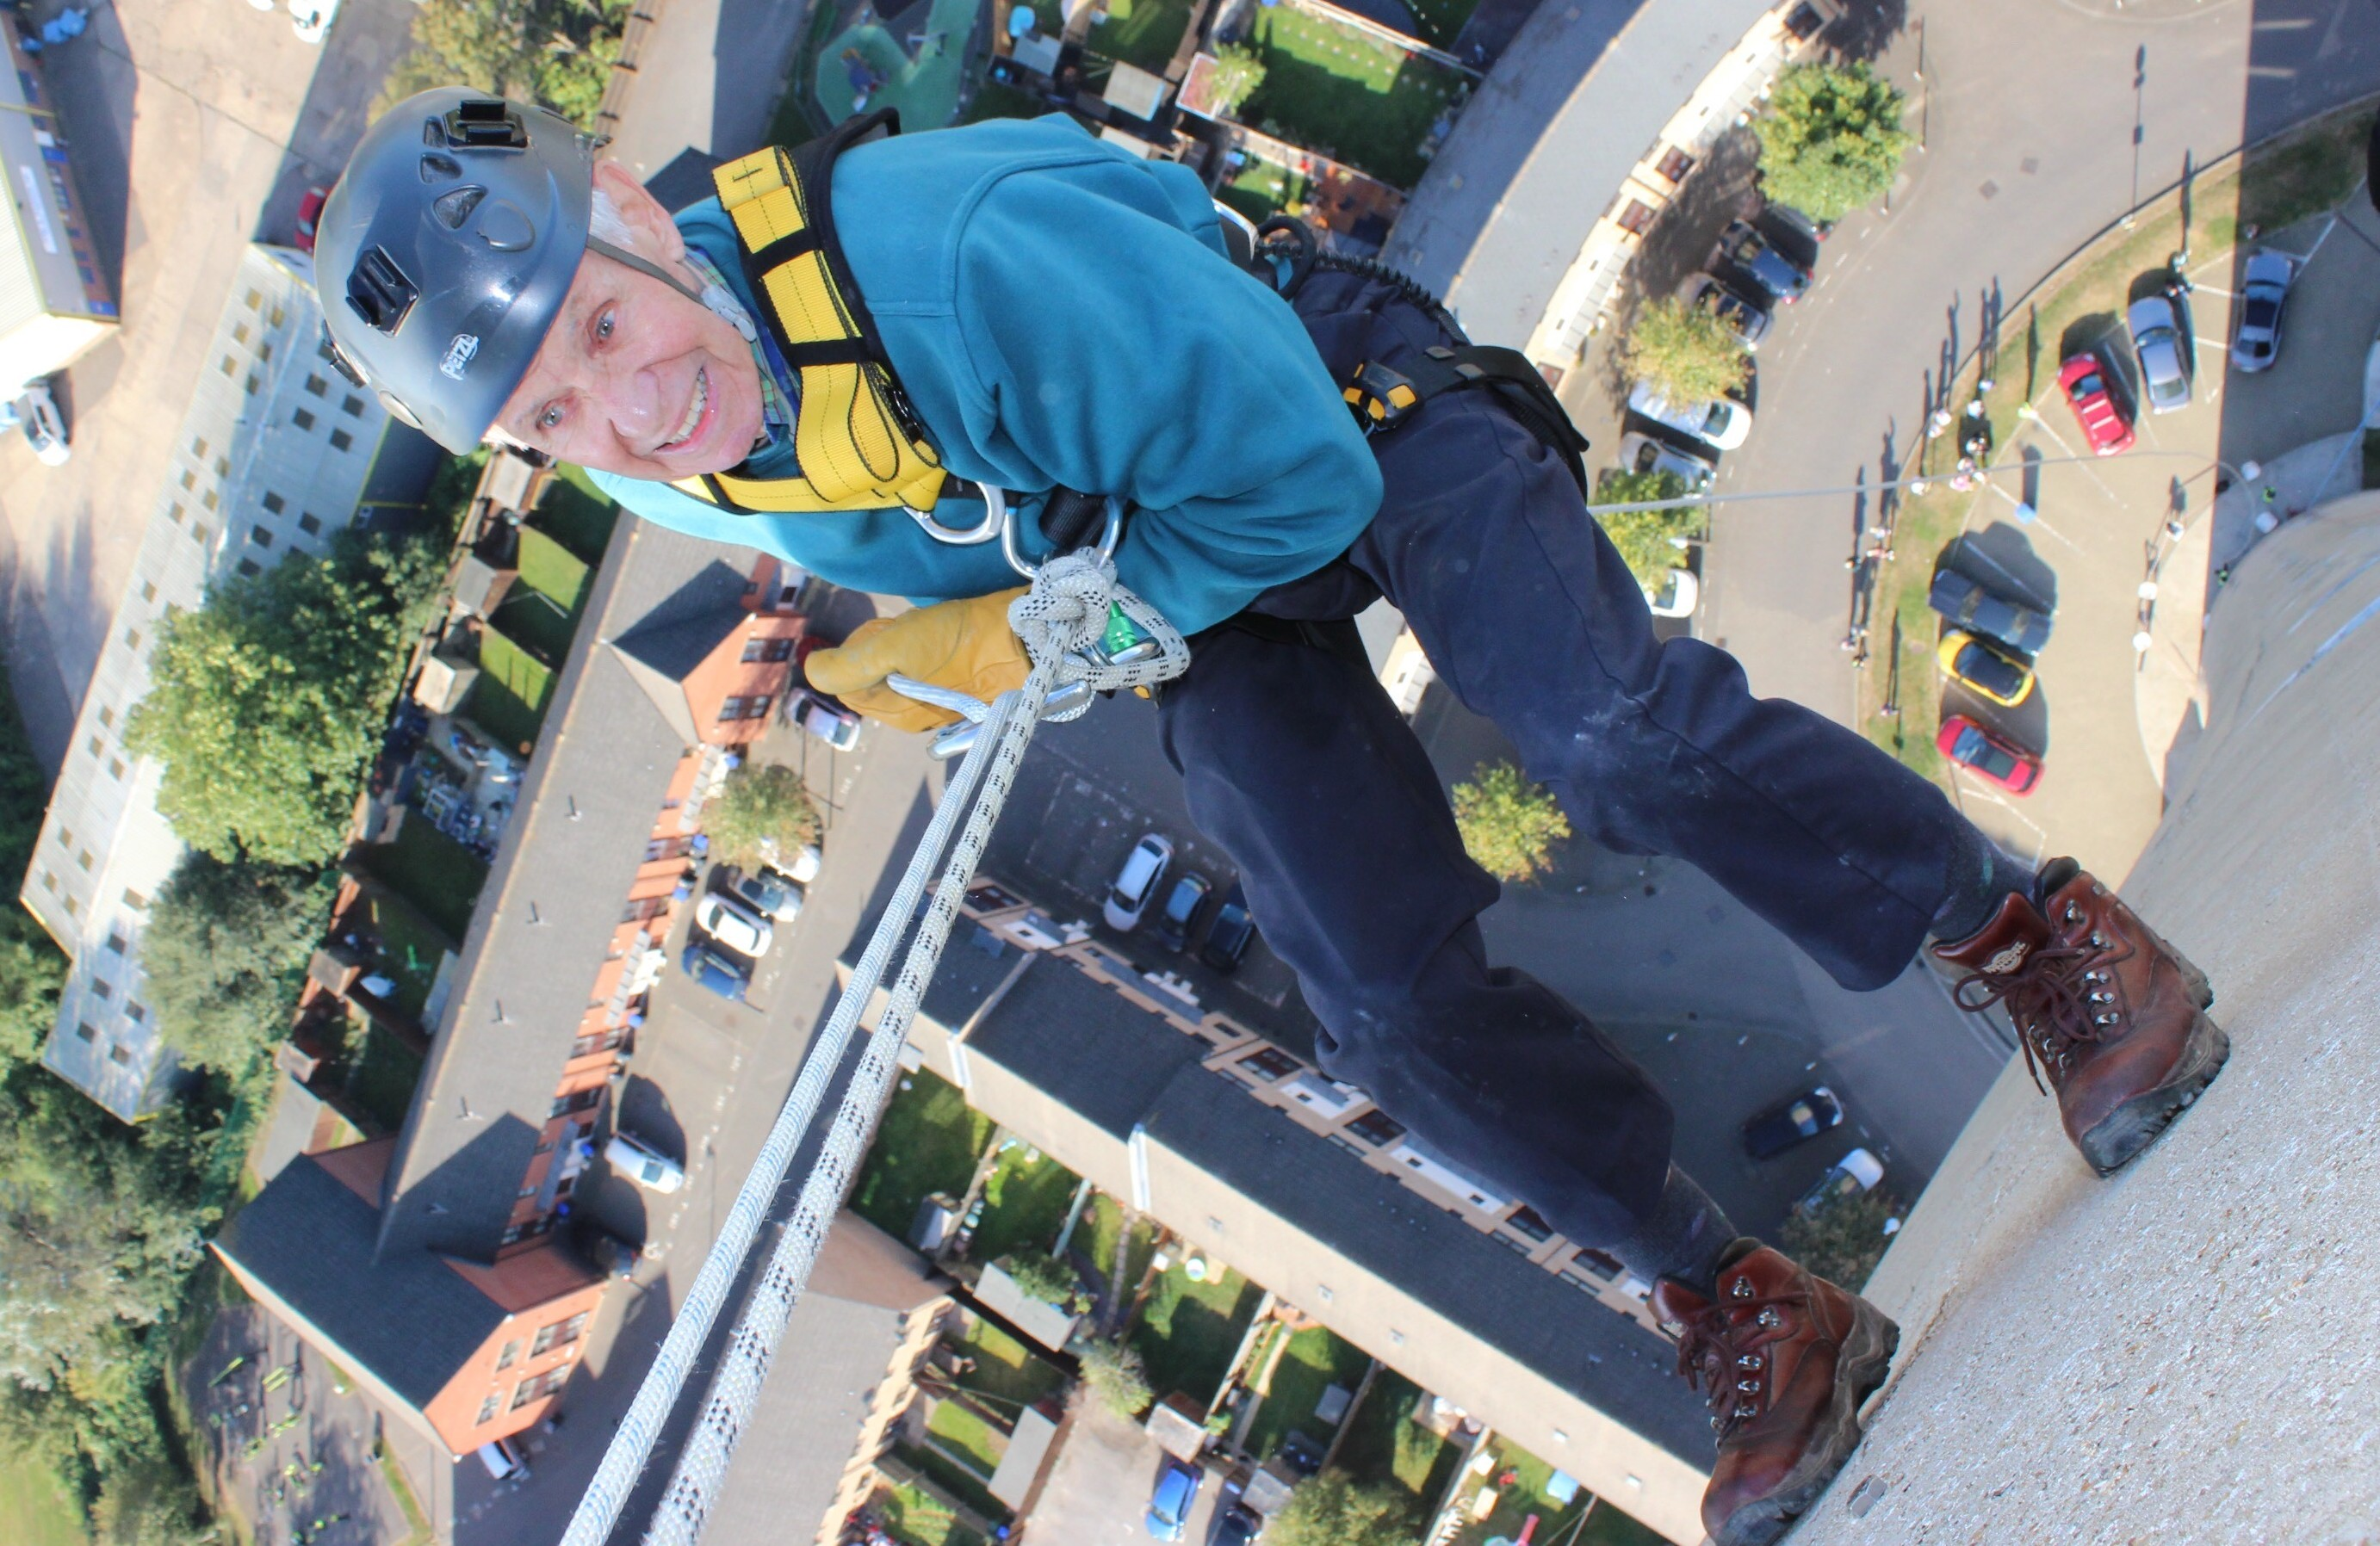 82 Year Old Abseils for Charity!